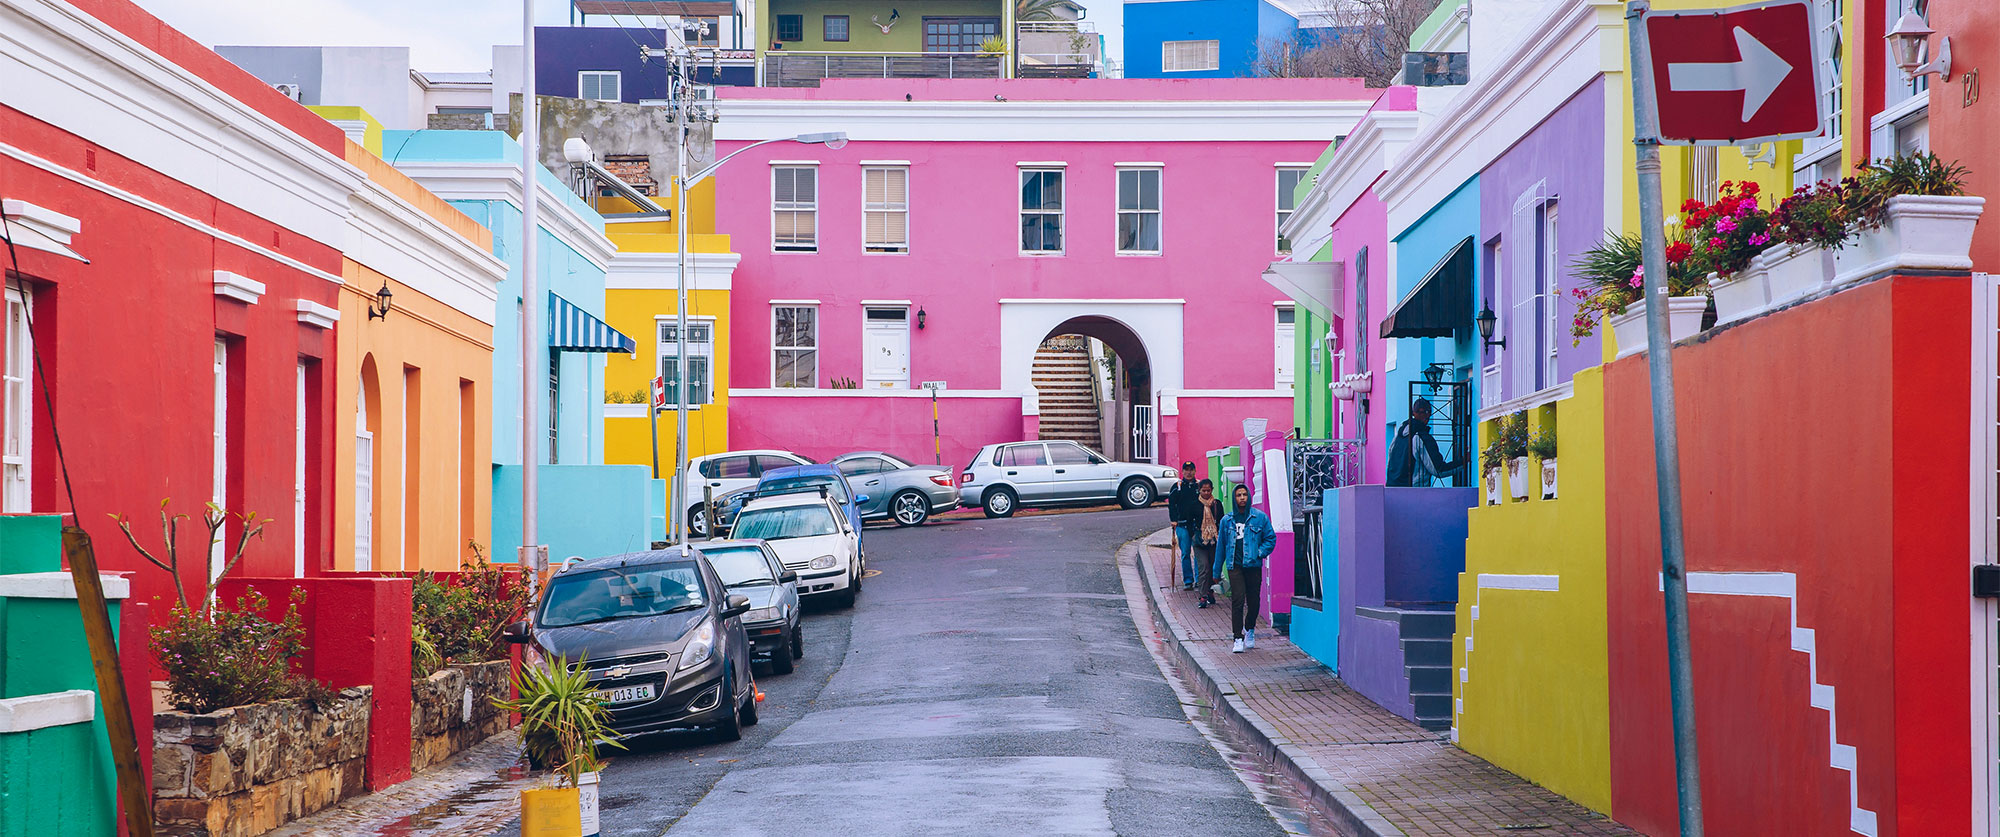 South Africa Vacation - Bo-Kaap Cape Town